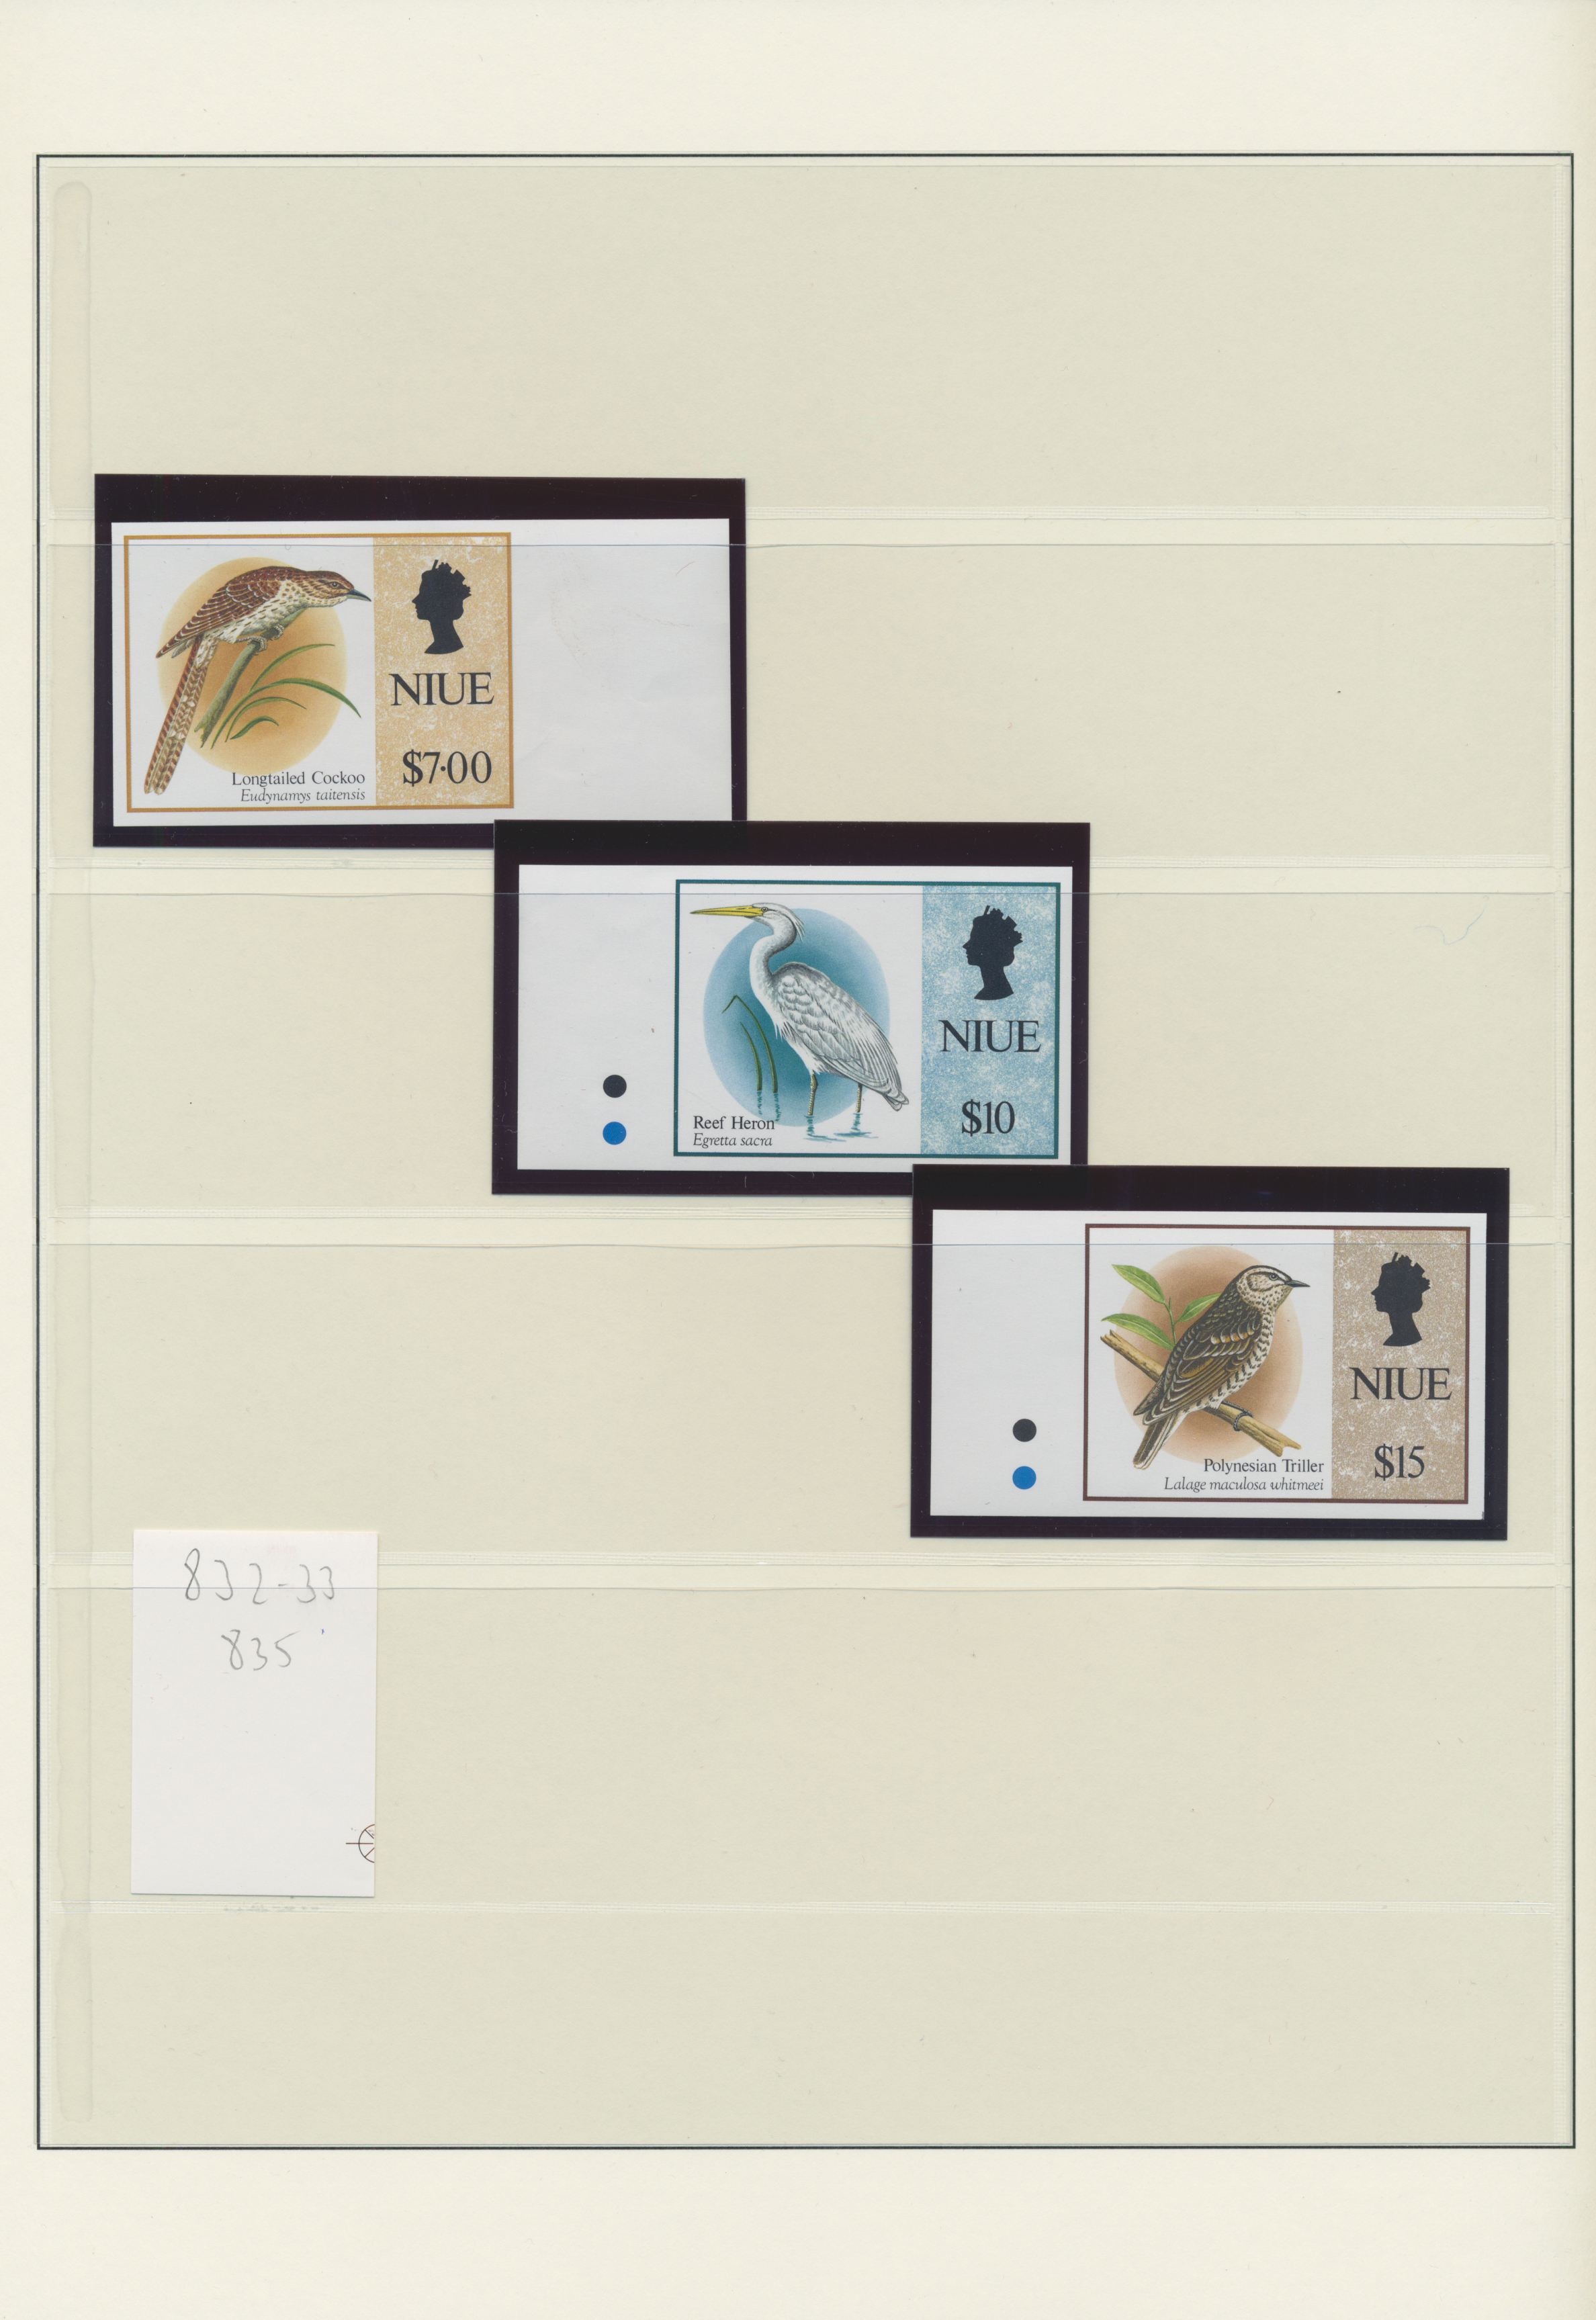 Lot 34738 - niue  -  Auktionshaus Christoph Gärtner GmbH & Co. KG Sale #44 Collections Germany